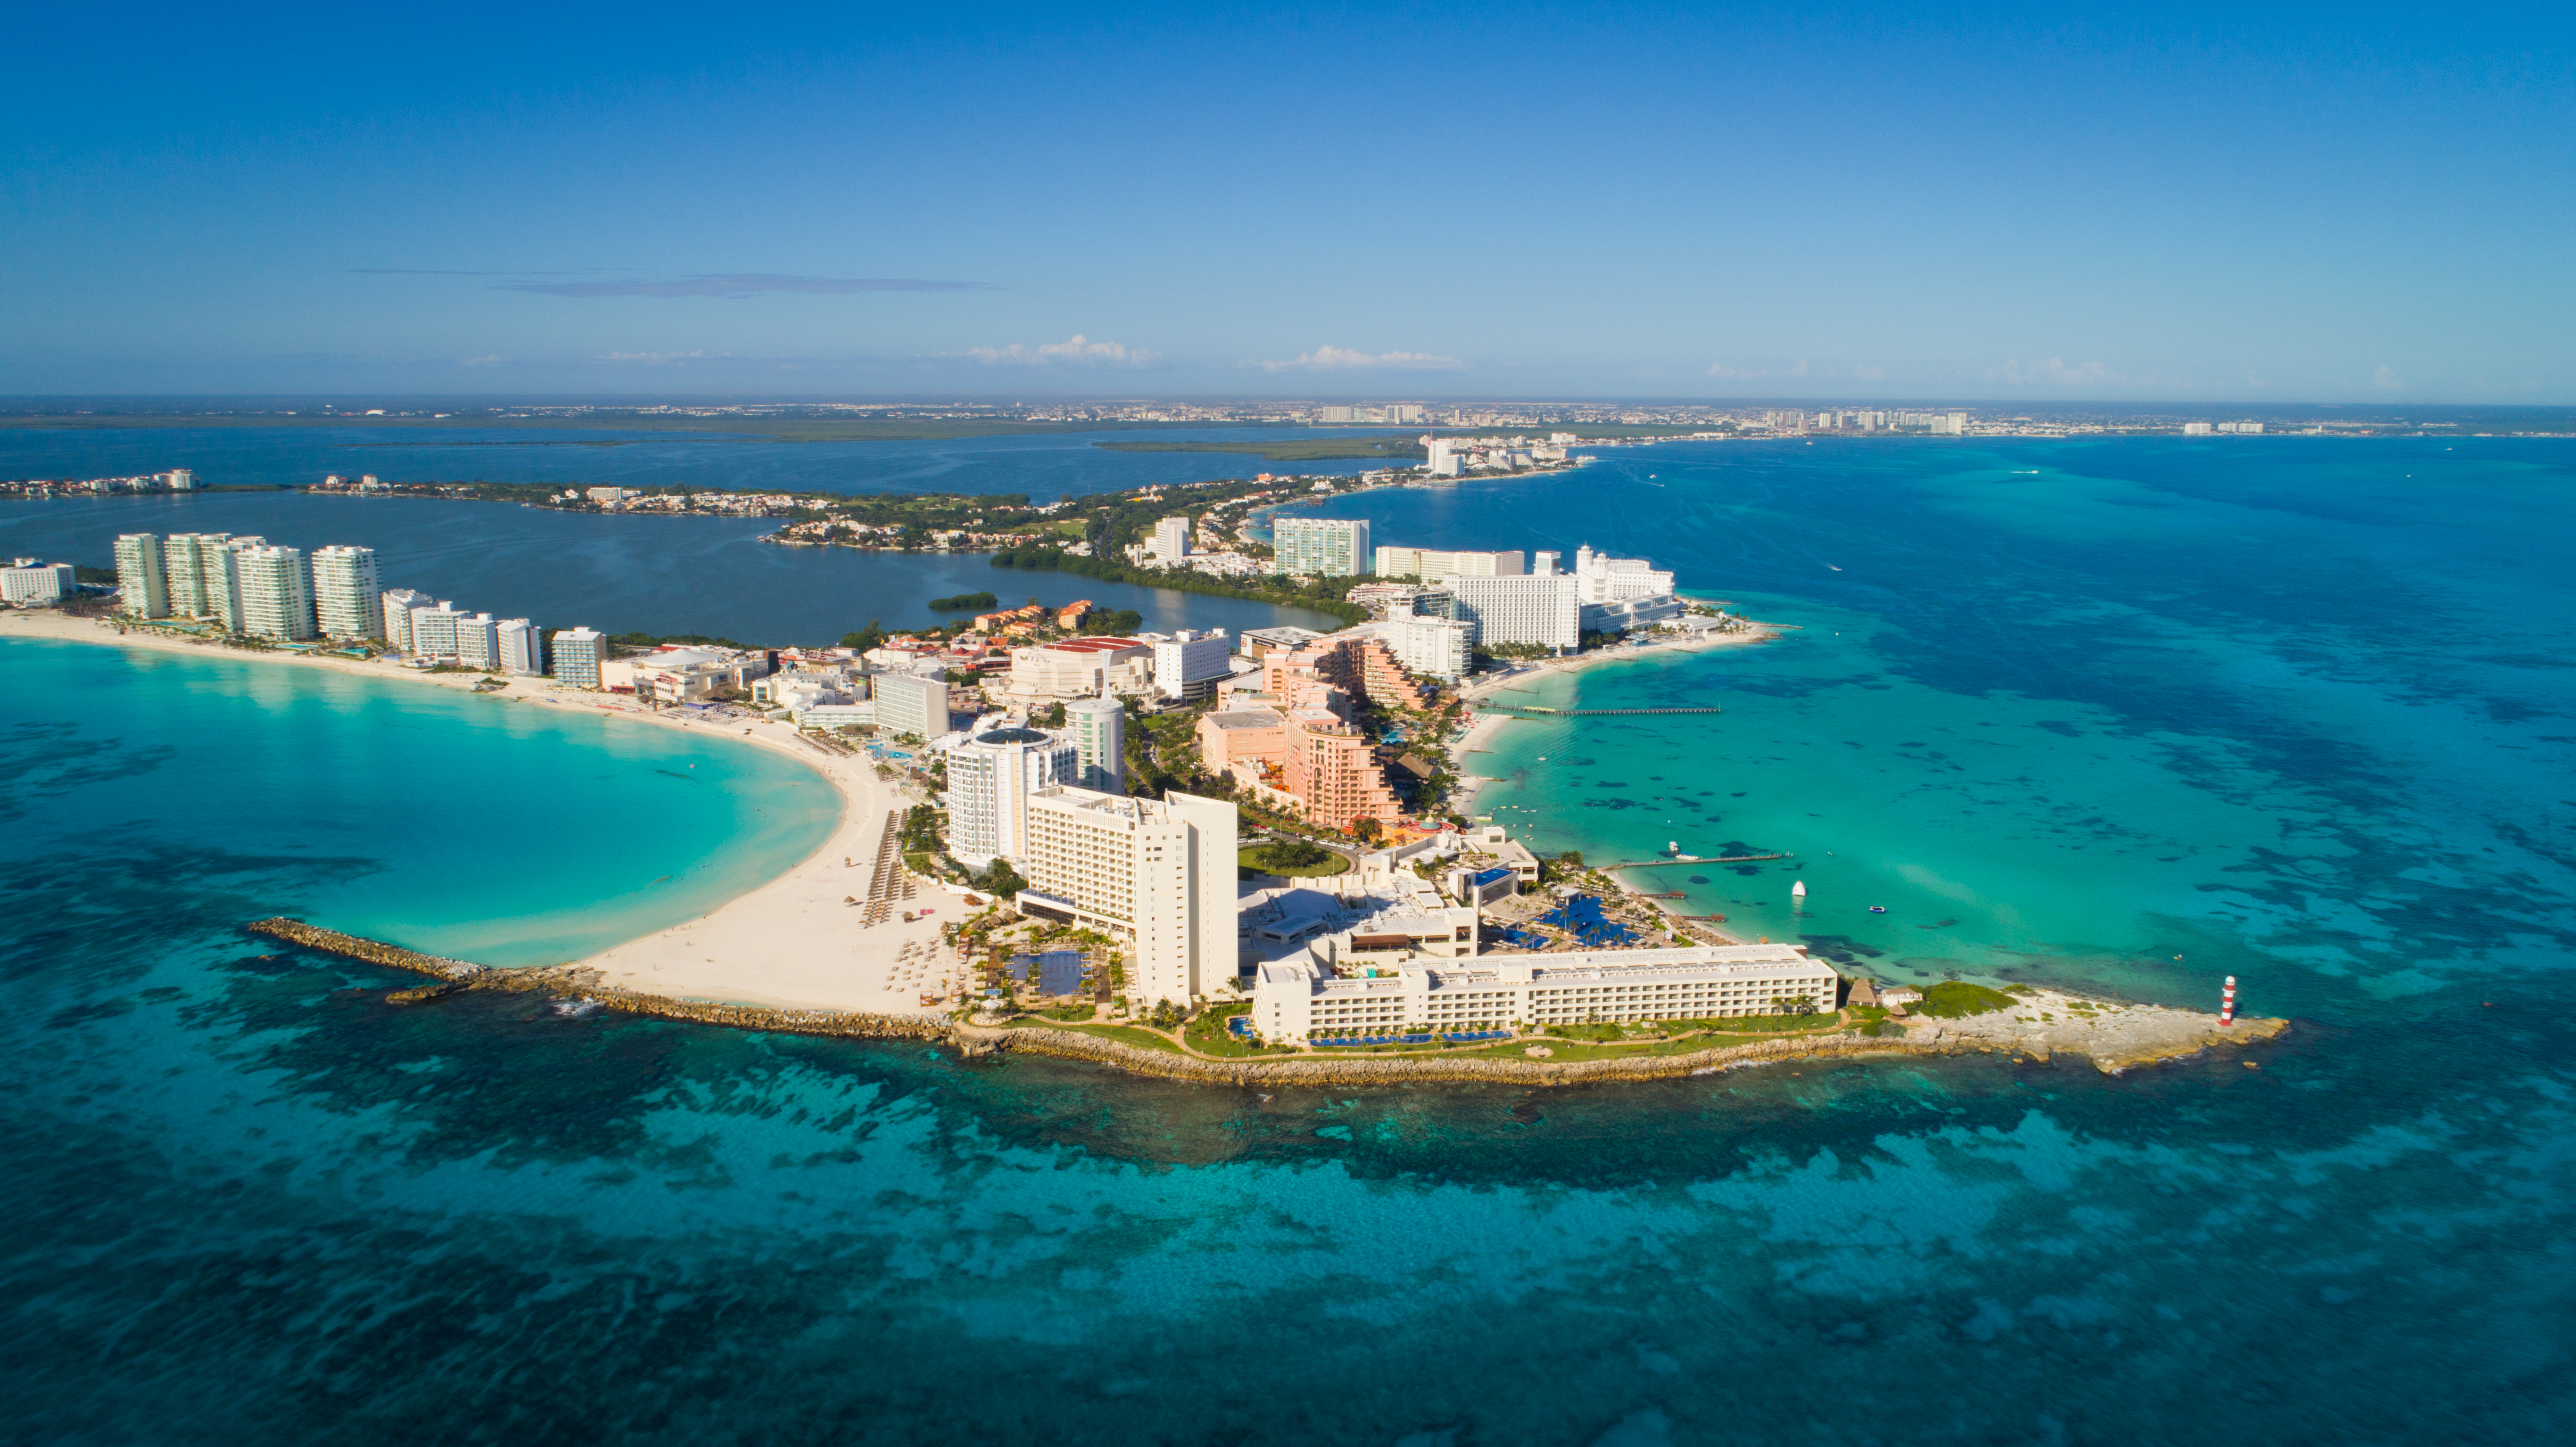 Visit Cancun The Official Tourism Website For Cancun Mexico